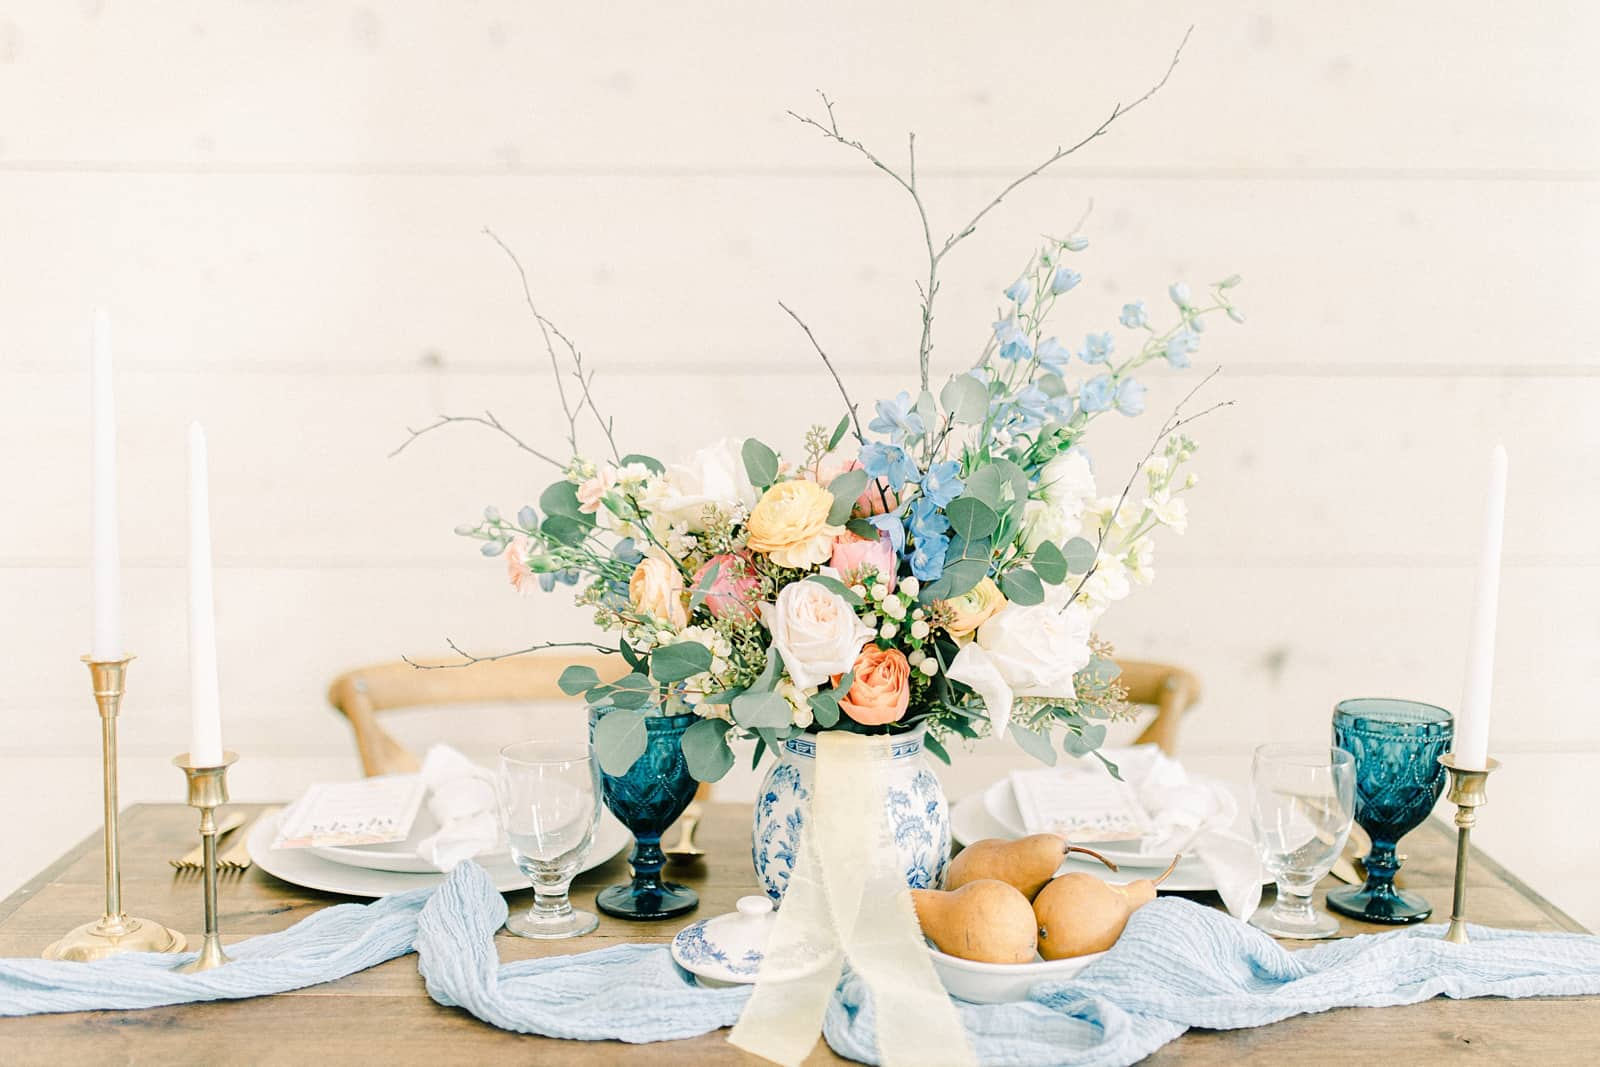 Walker Farms wedding inspiration, pastel wedding colors, light blue flower centerpiece, European wedding